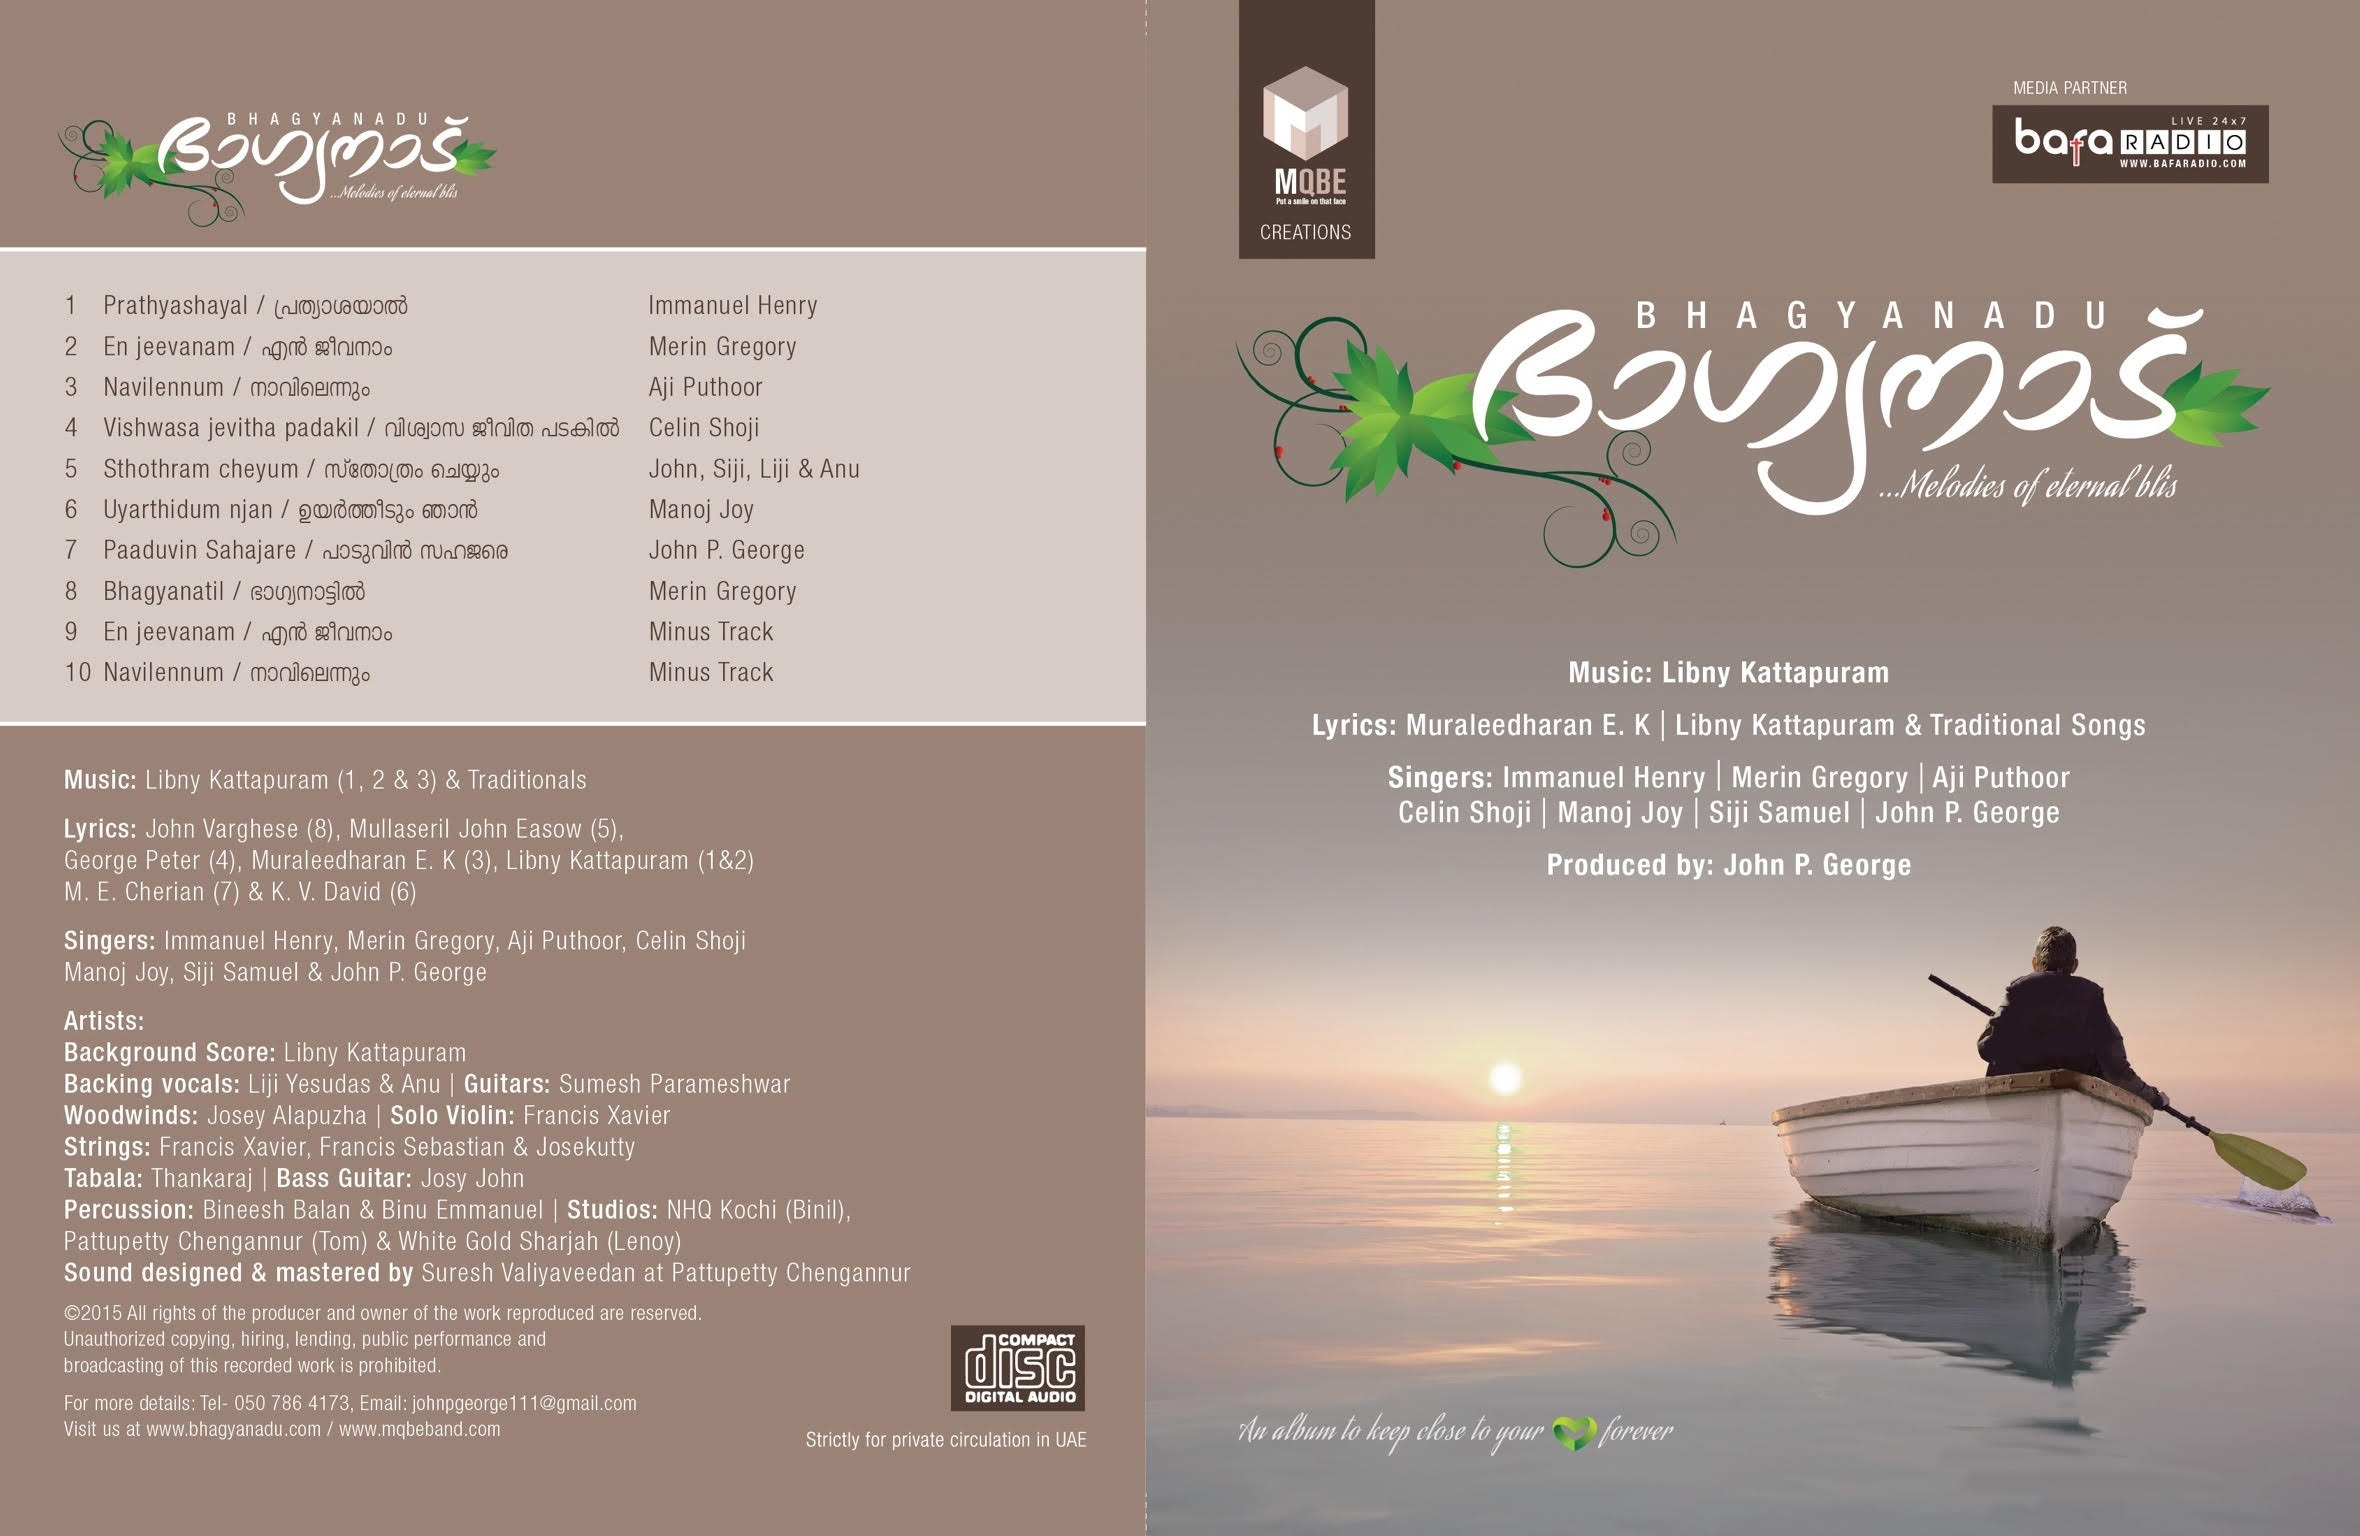 Bhagyanadu-Melodies-of-Eternal-Bliss